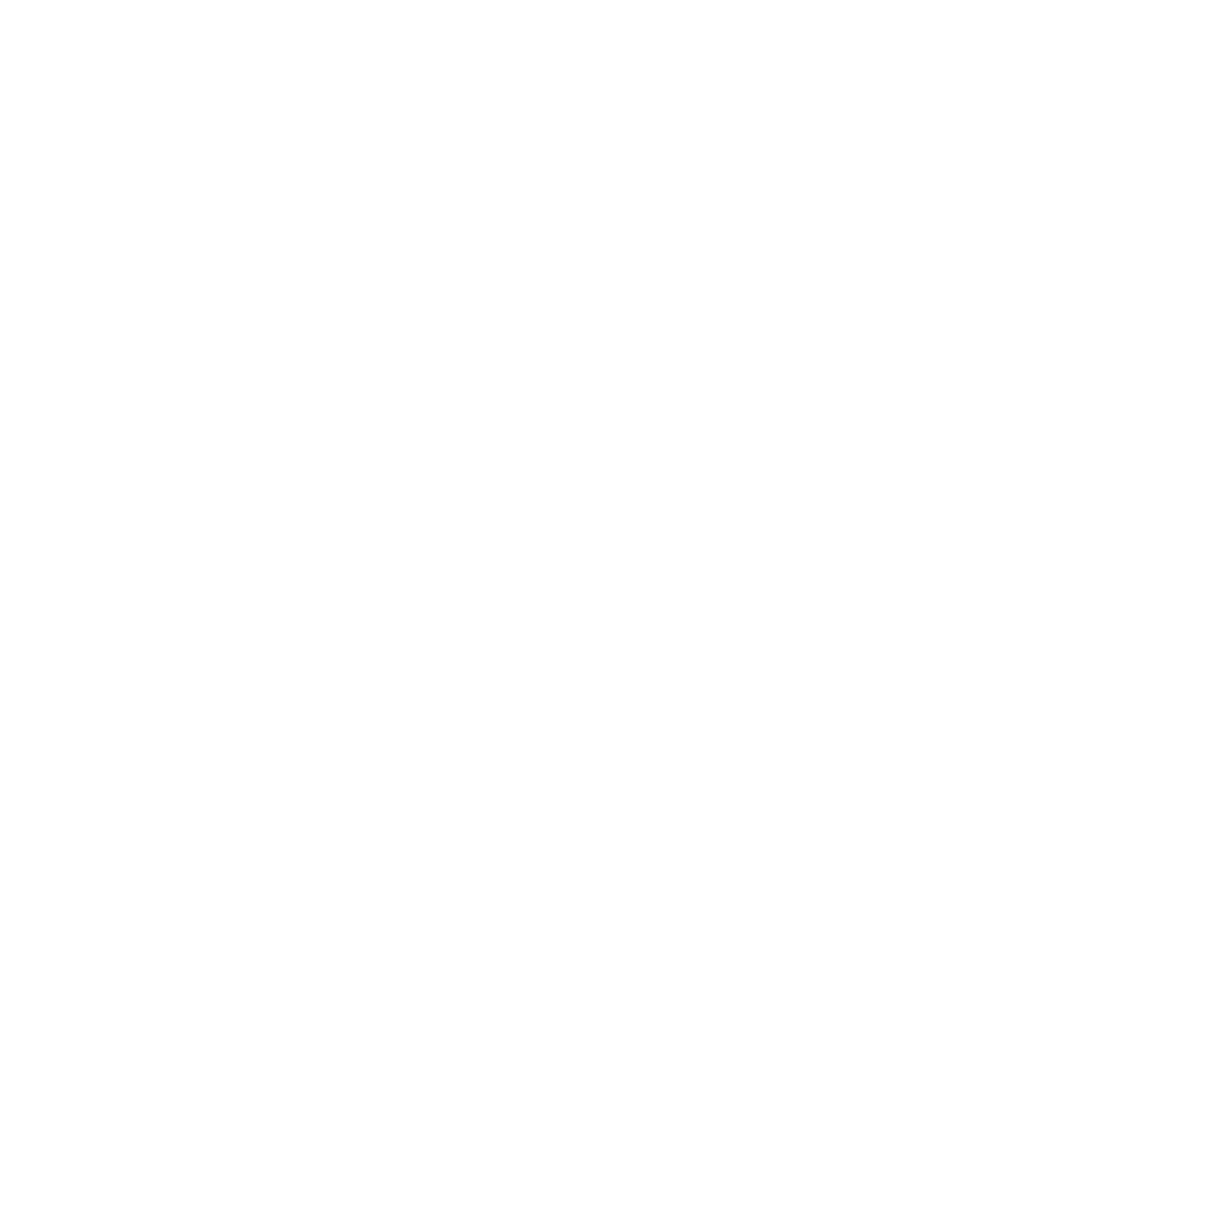 Soulfrito_June_9_WEB_PARTNERS_CULTUREFLUENCE.png